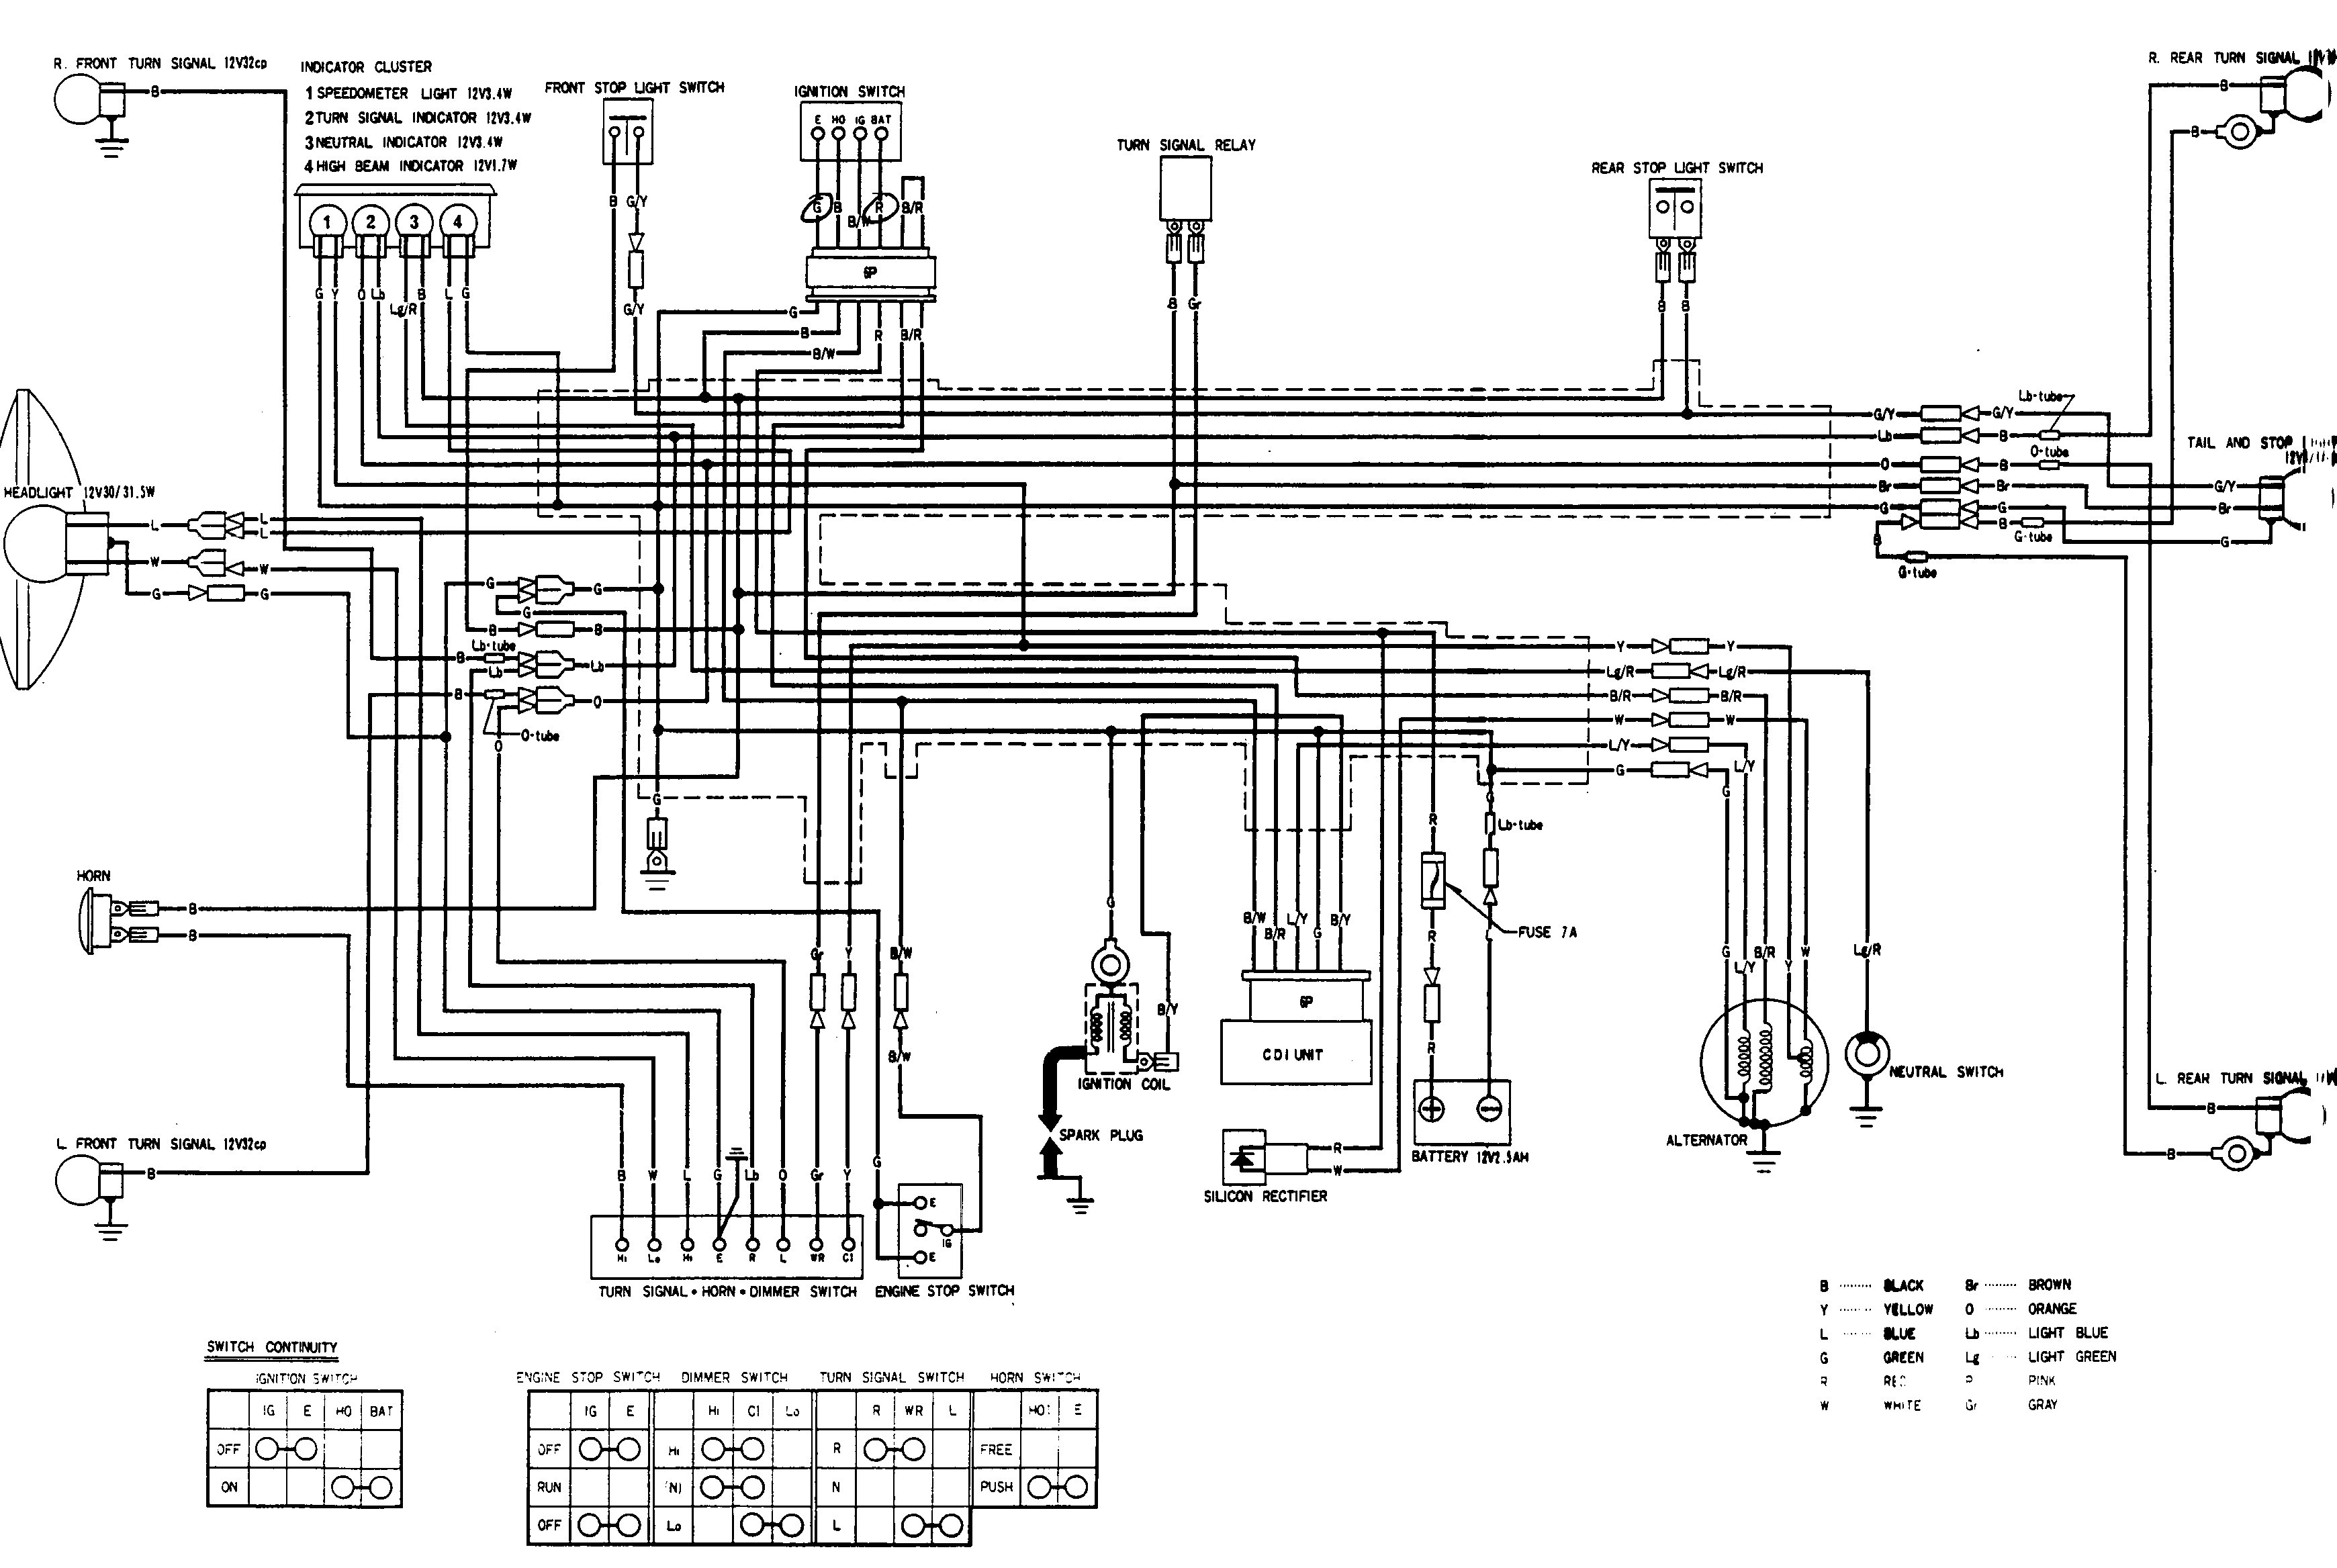 Wiring Diagram For Honda Civic 1997